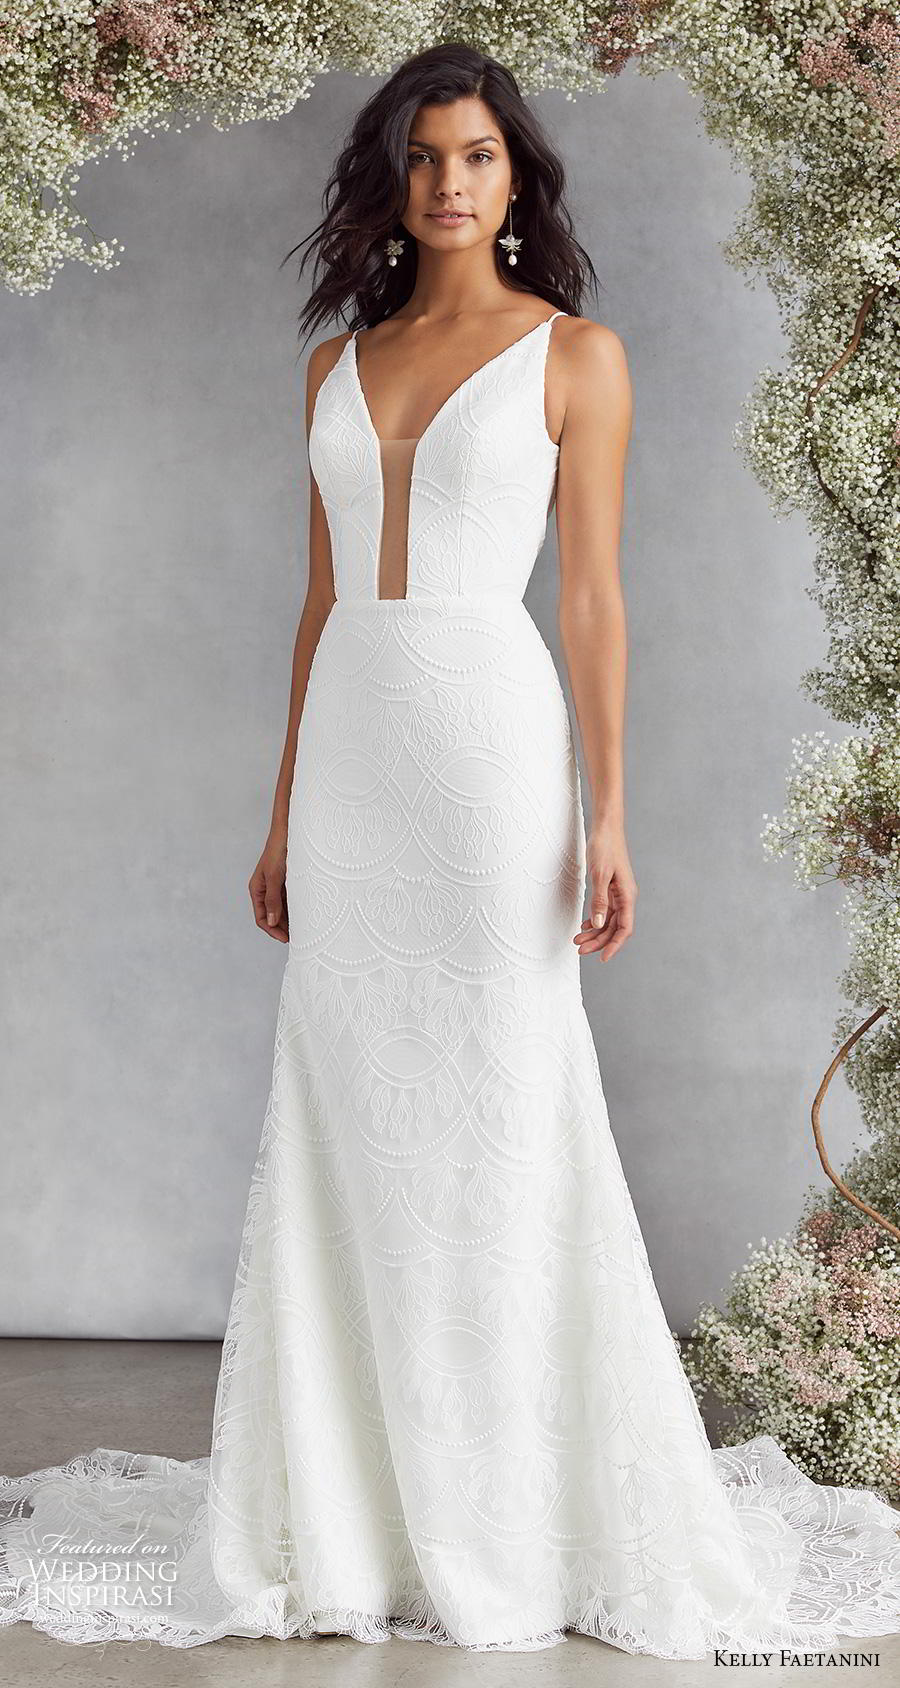 kelly faetanini fall 2020 bridal thin strap deep funnel v neck light embellishment elegant fit and flare wedding dress backless low v back chapel train (11) mv